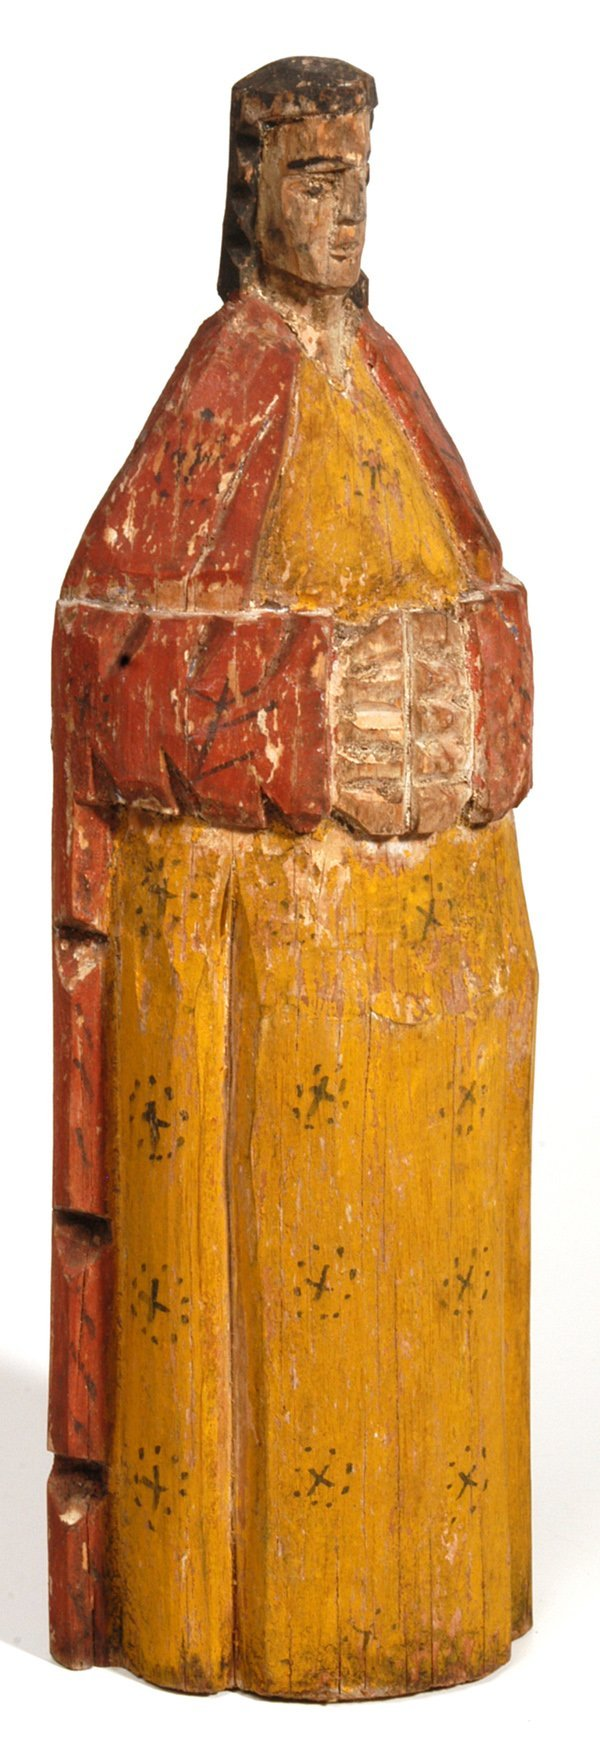 14: EARLY WOODEN CARVED RELIGIOUS FIGURE